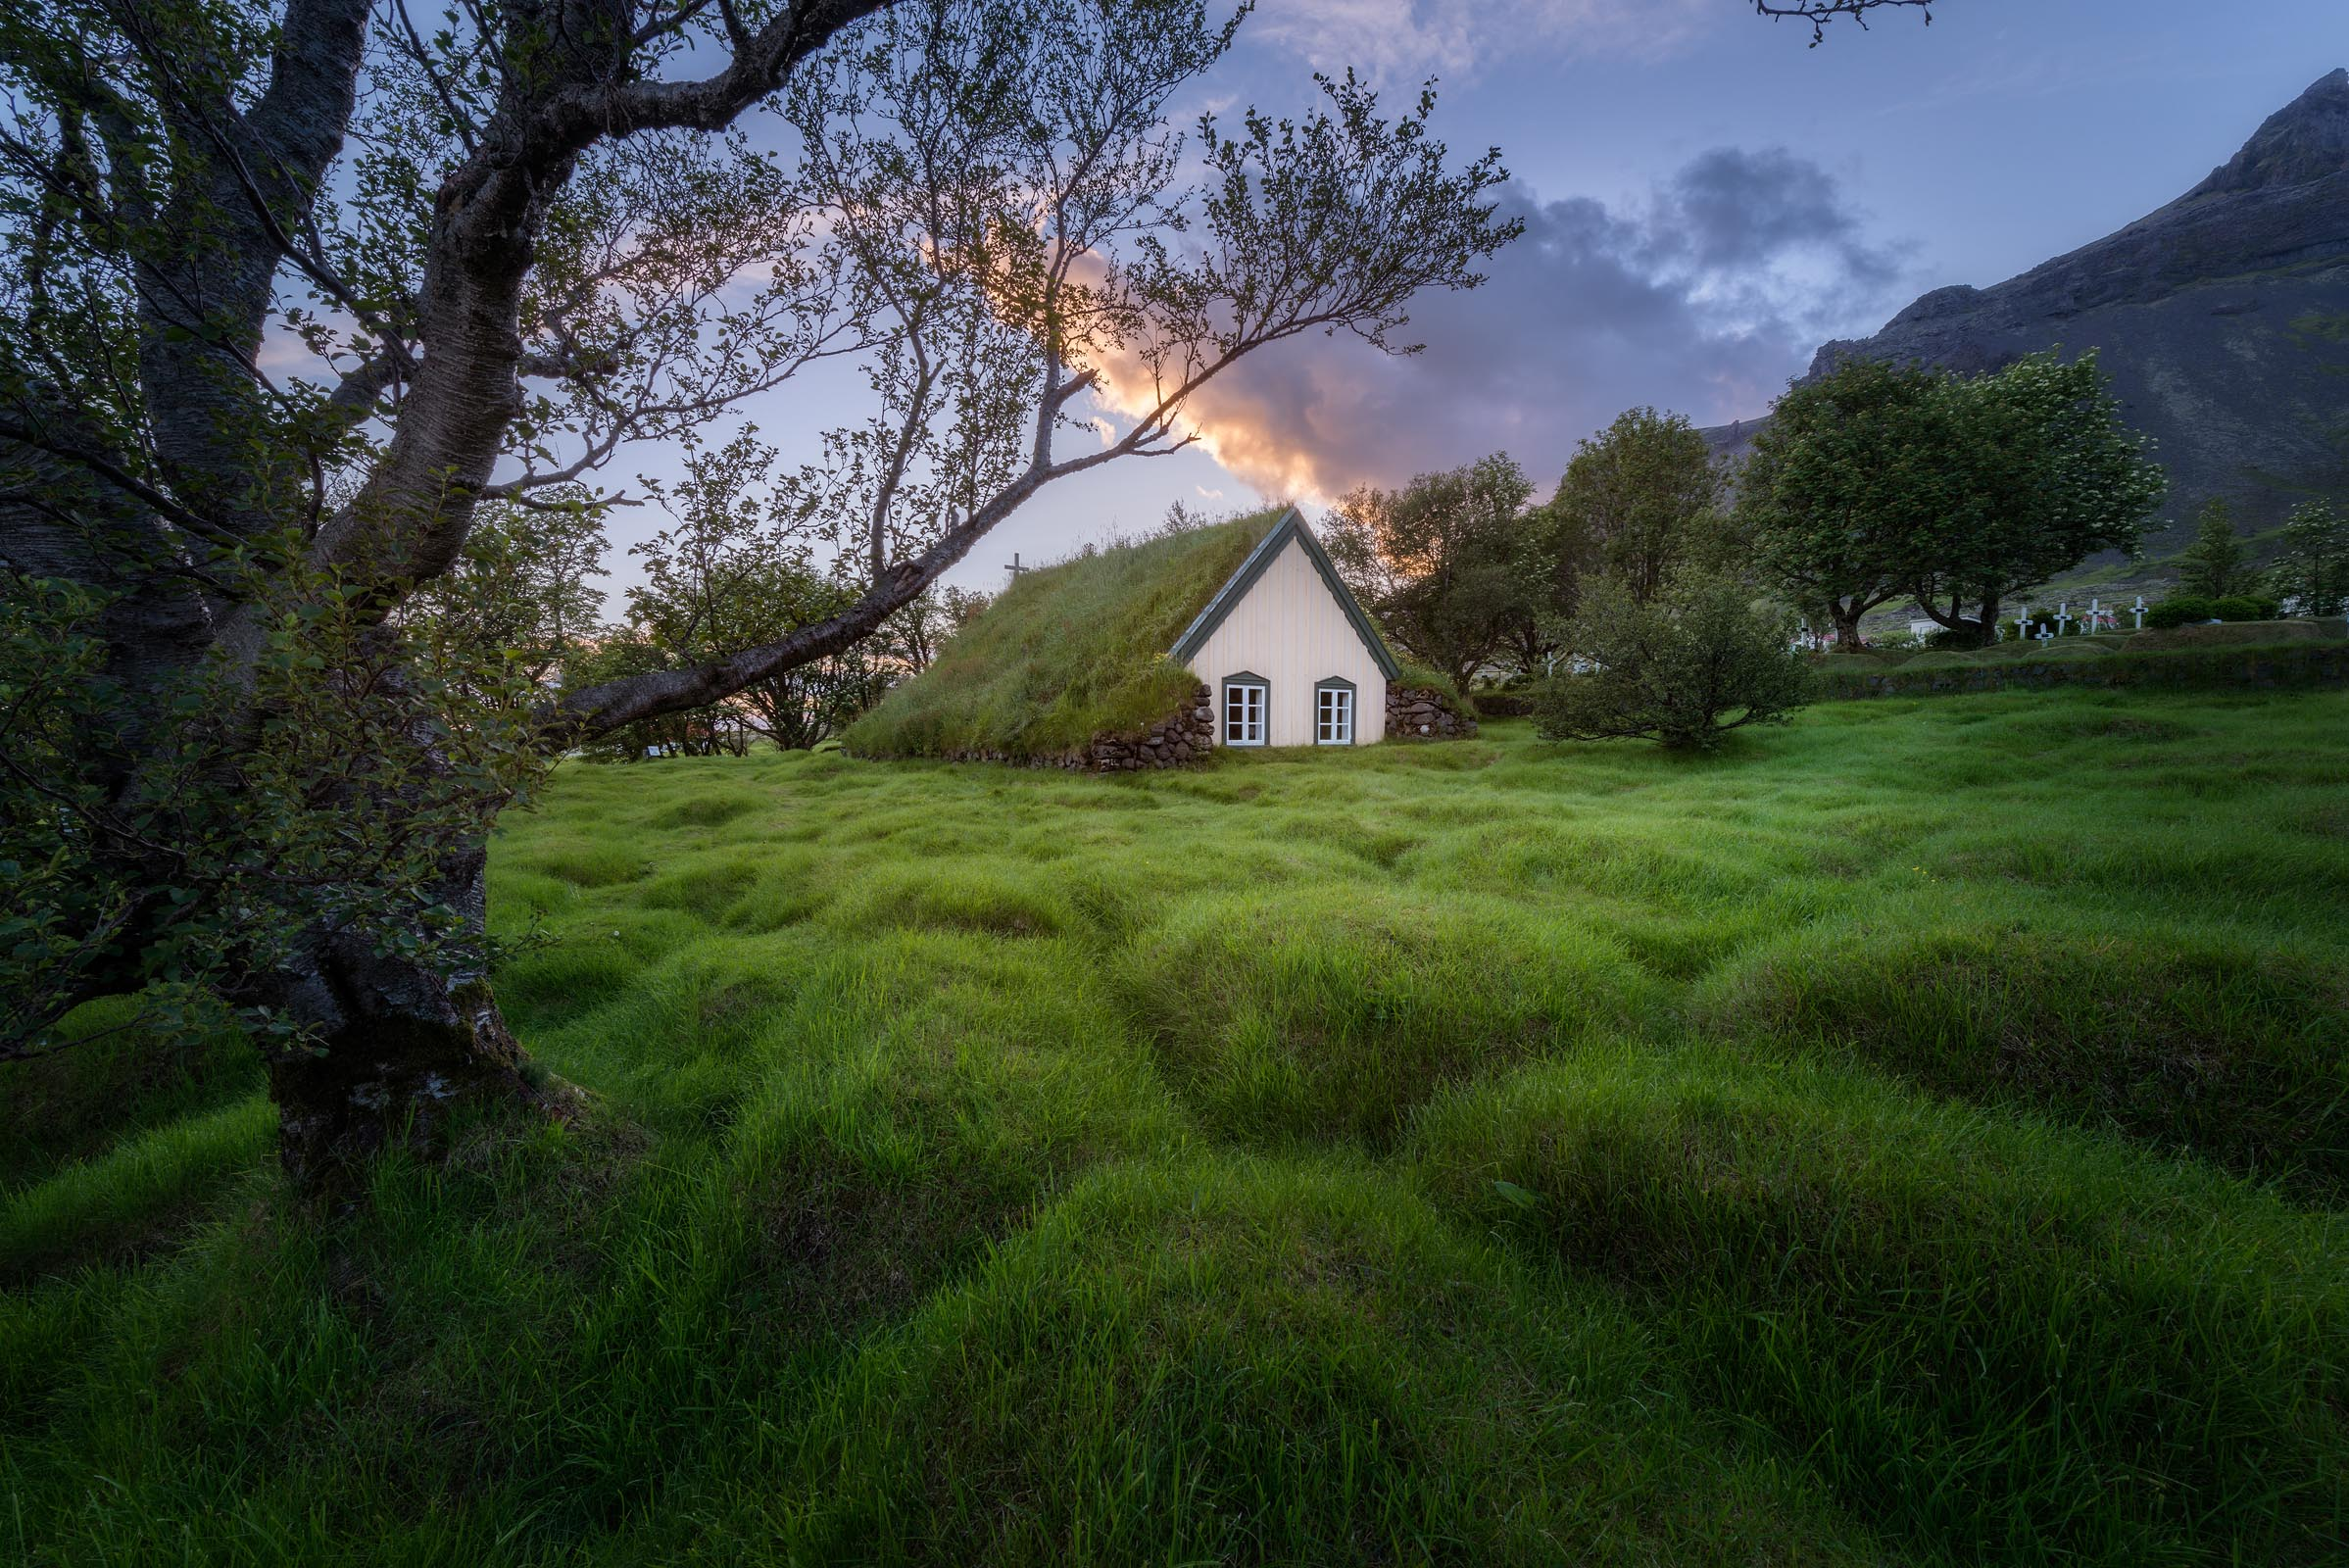 Photograph of Hofskirkja Church in Hof, Iceland by Brent Goldman Photography